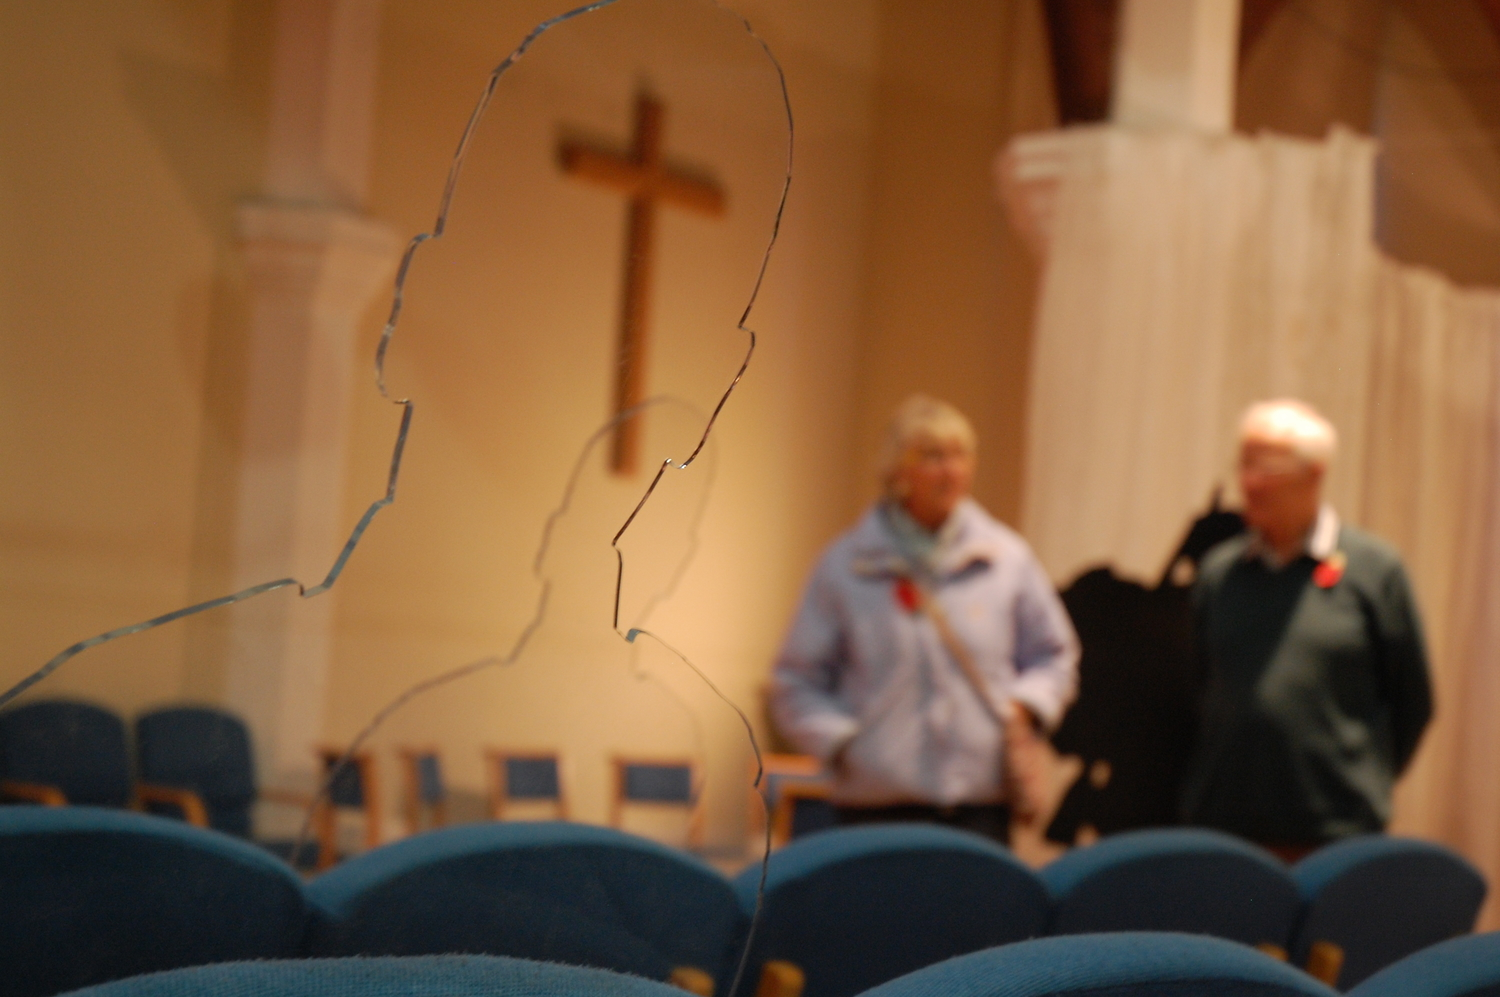 Hundreds visit church installation of transparent silhouettes of Remembrance